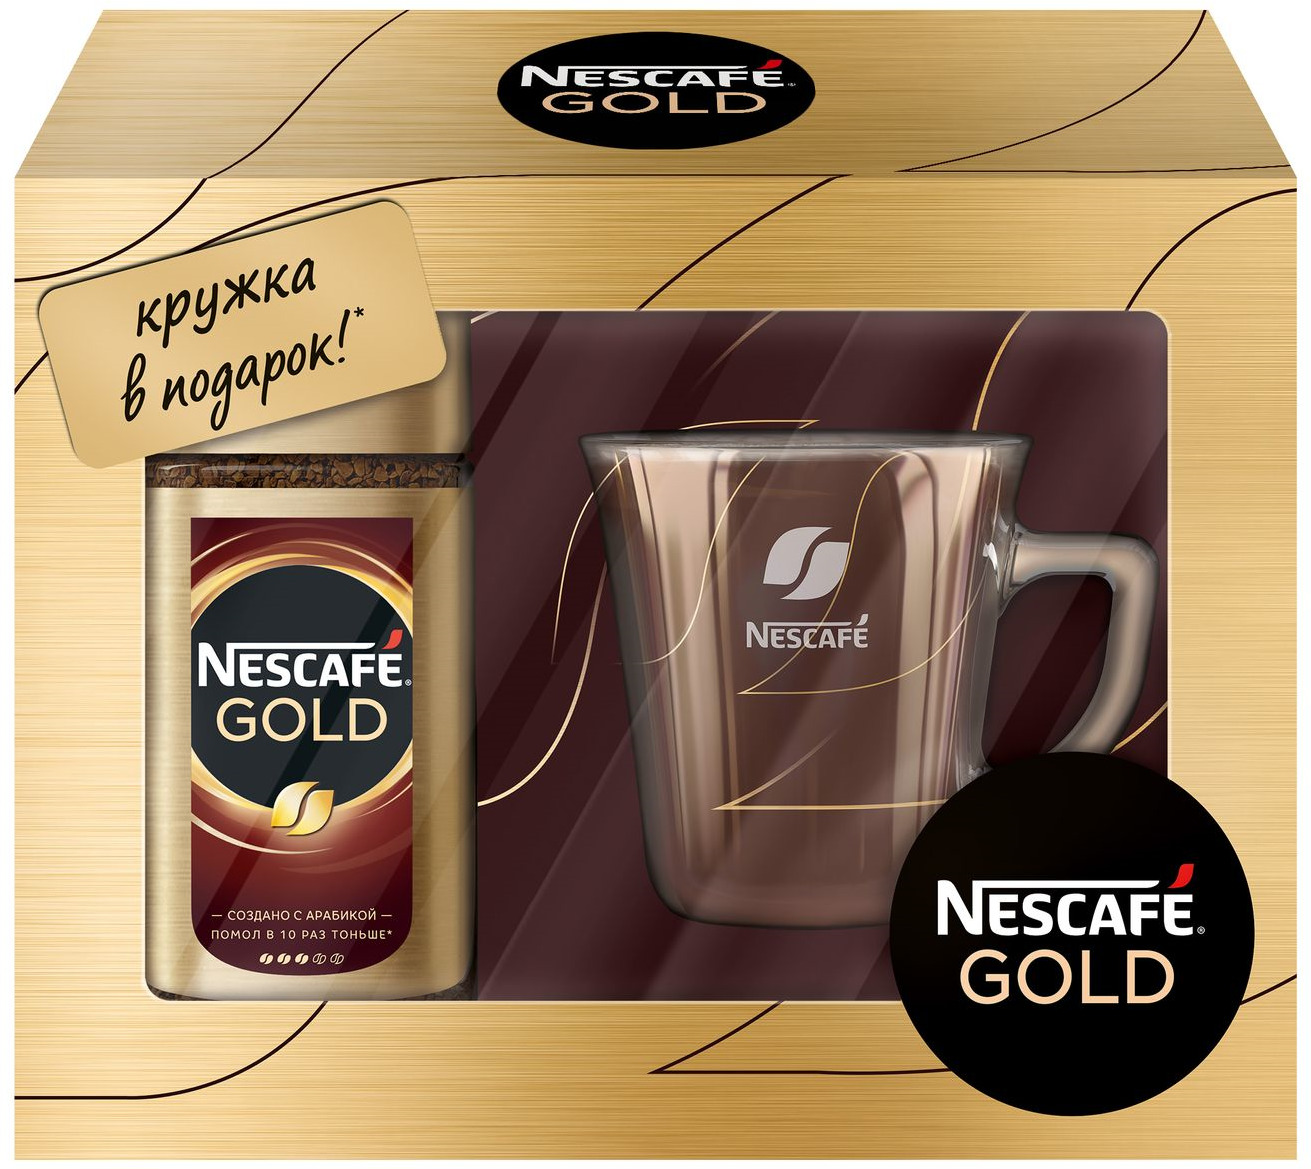 Кофе растворимый сублимированный Nescafe Gold, 95 г + кружка в подарок